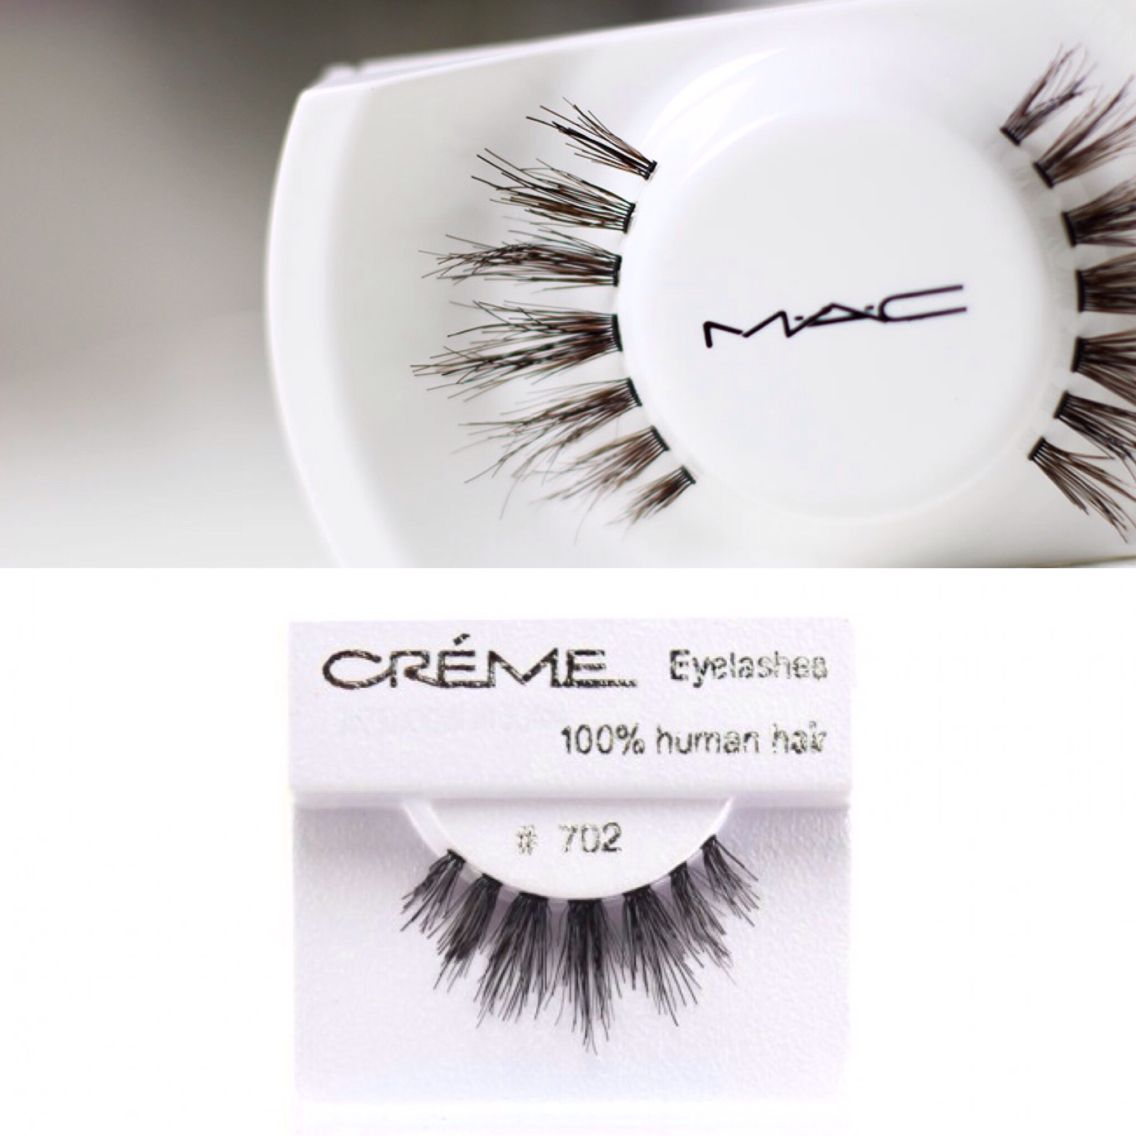 93cc1fb1e1d Mac 35 Dupe for only $1.50 by Créme in 702 on iKatehouse.com. I also found  these lashes on Amazon 6 pairs for $10.45 and free shipping. What can beat  that?!